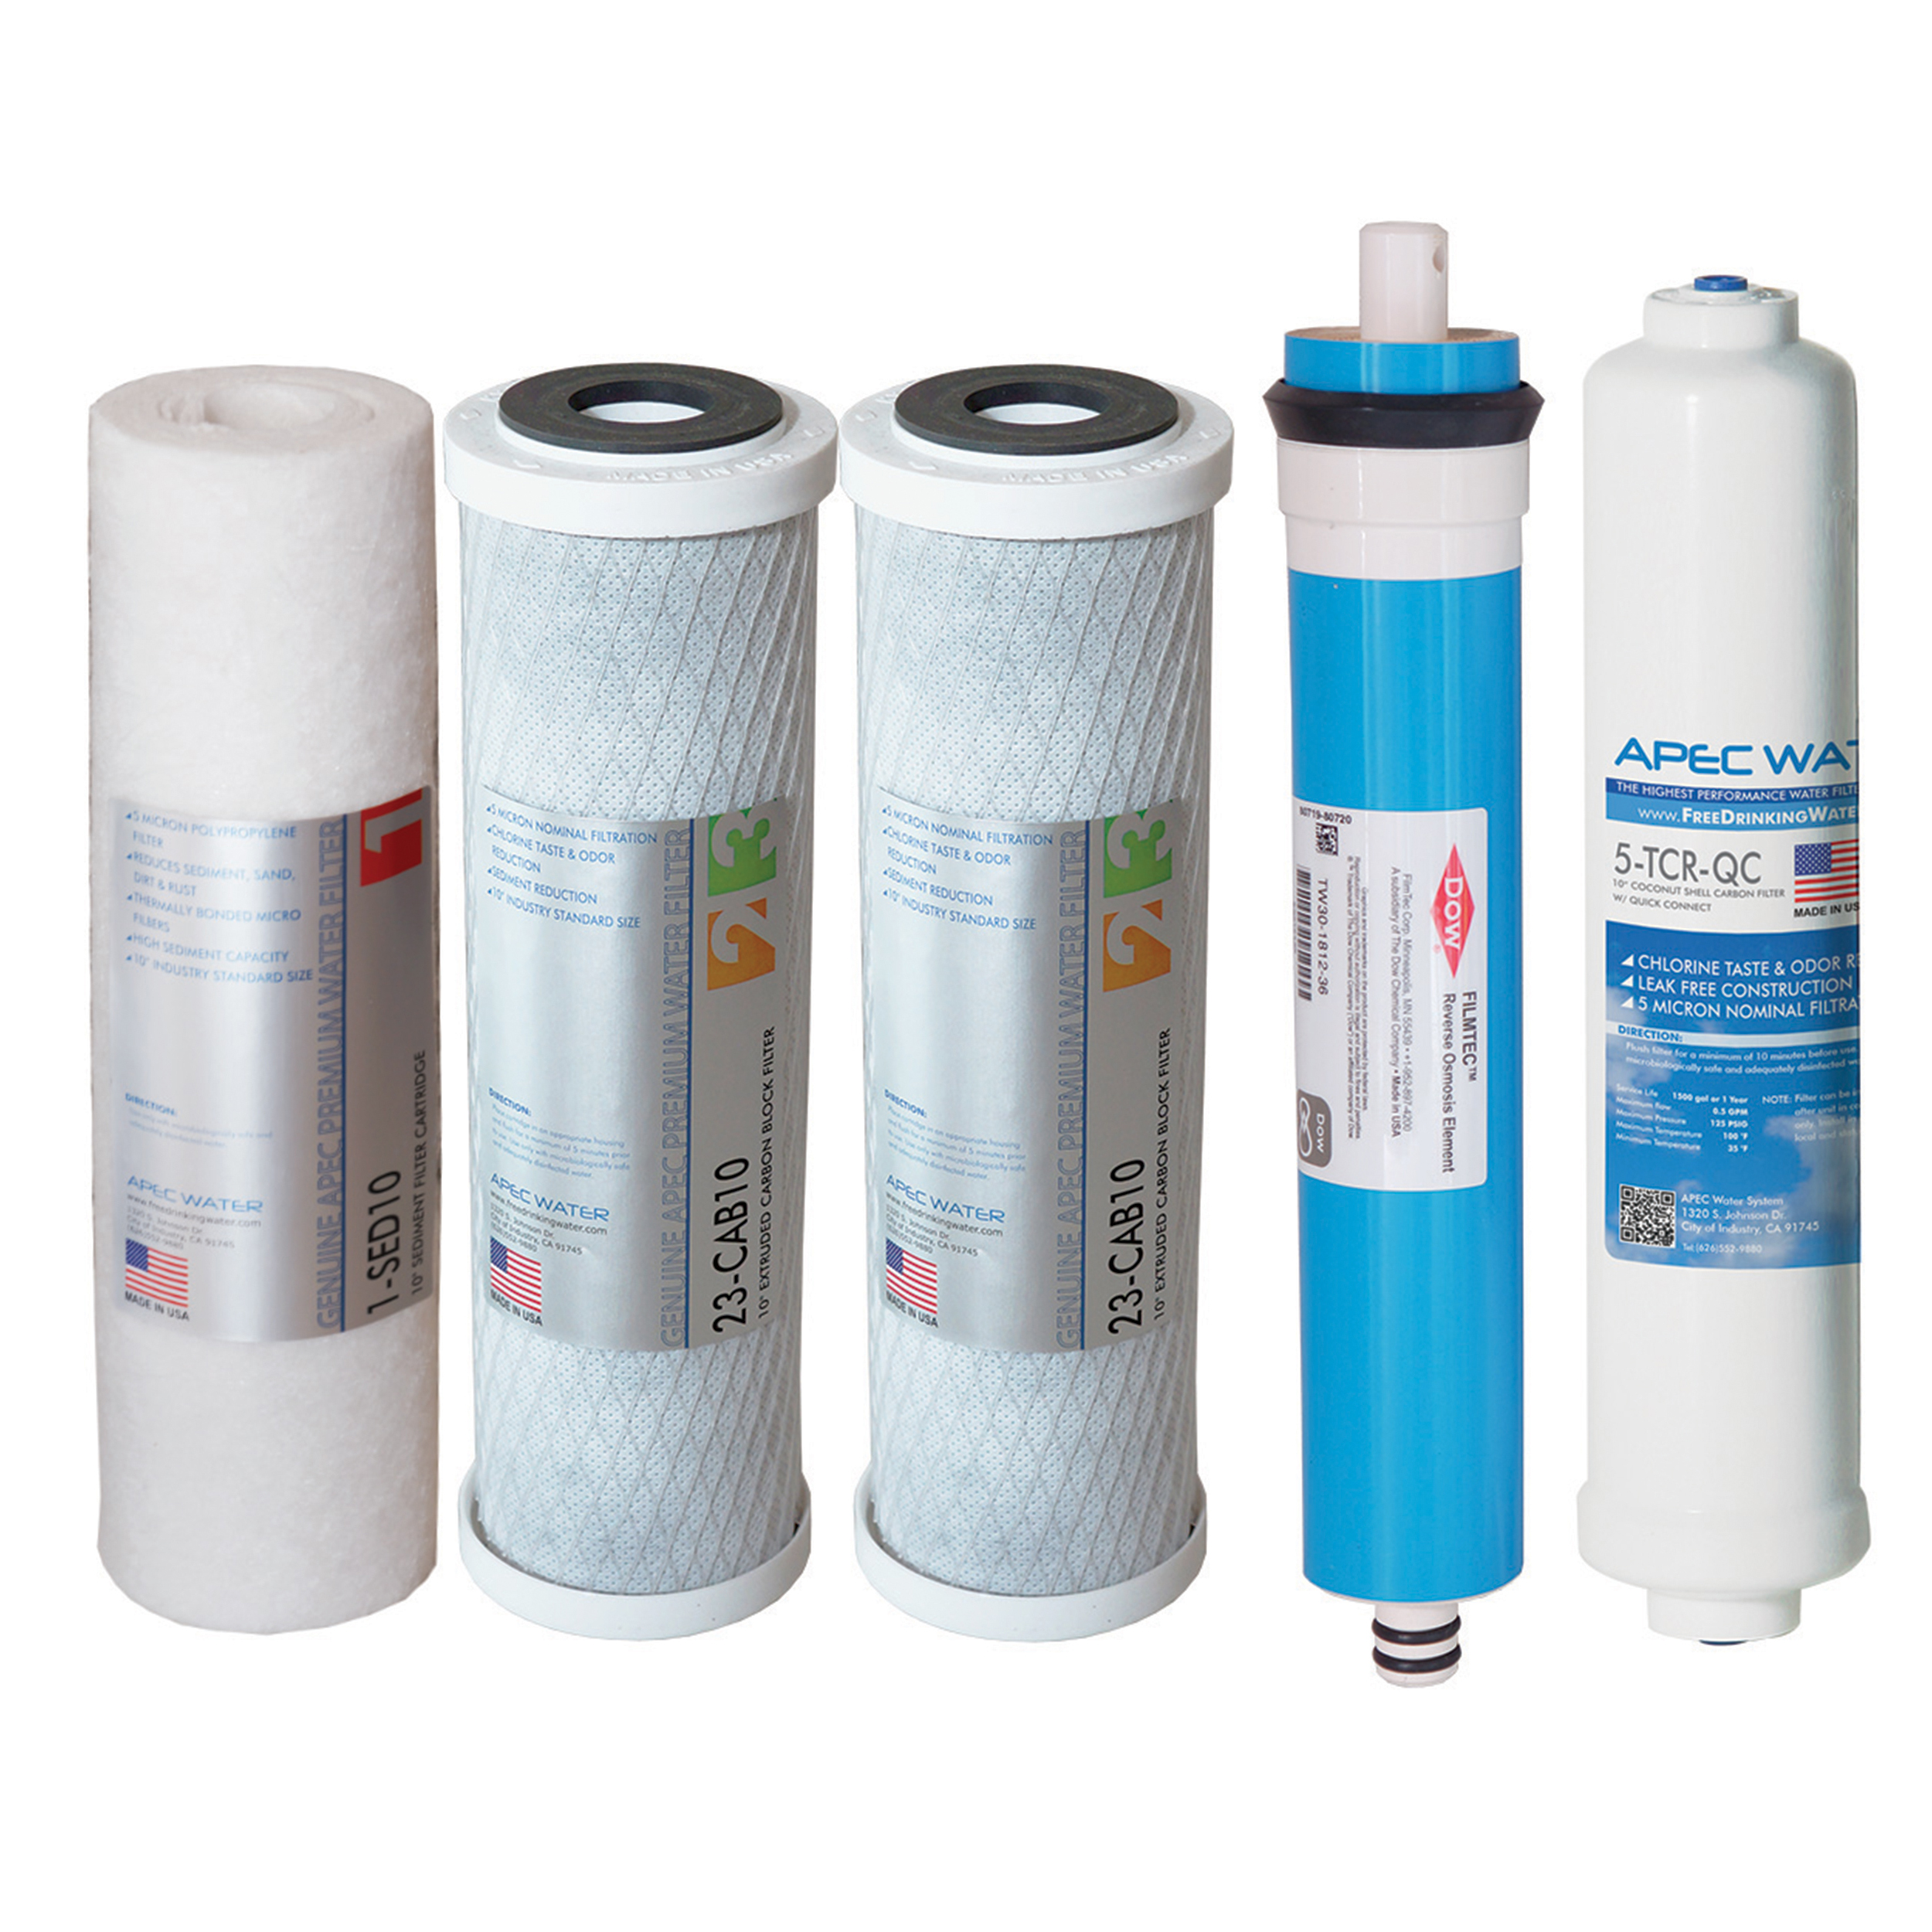 APEC FILTER-MAX90 US MADE 90 GPD High Flow Complete Replacement Filter Set For ULTIMATE Series Reverse Osmosis Water Filter System